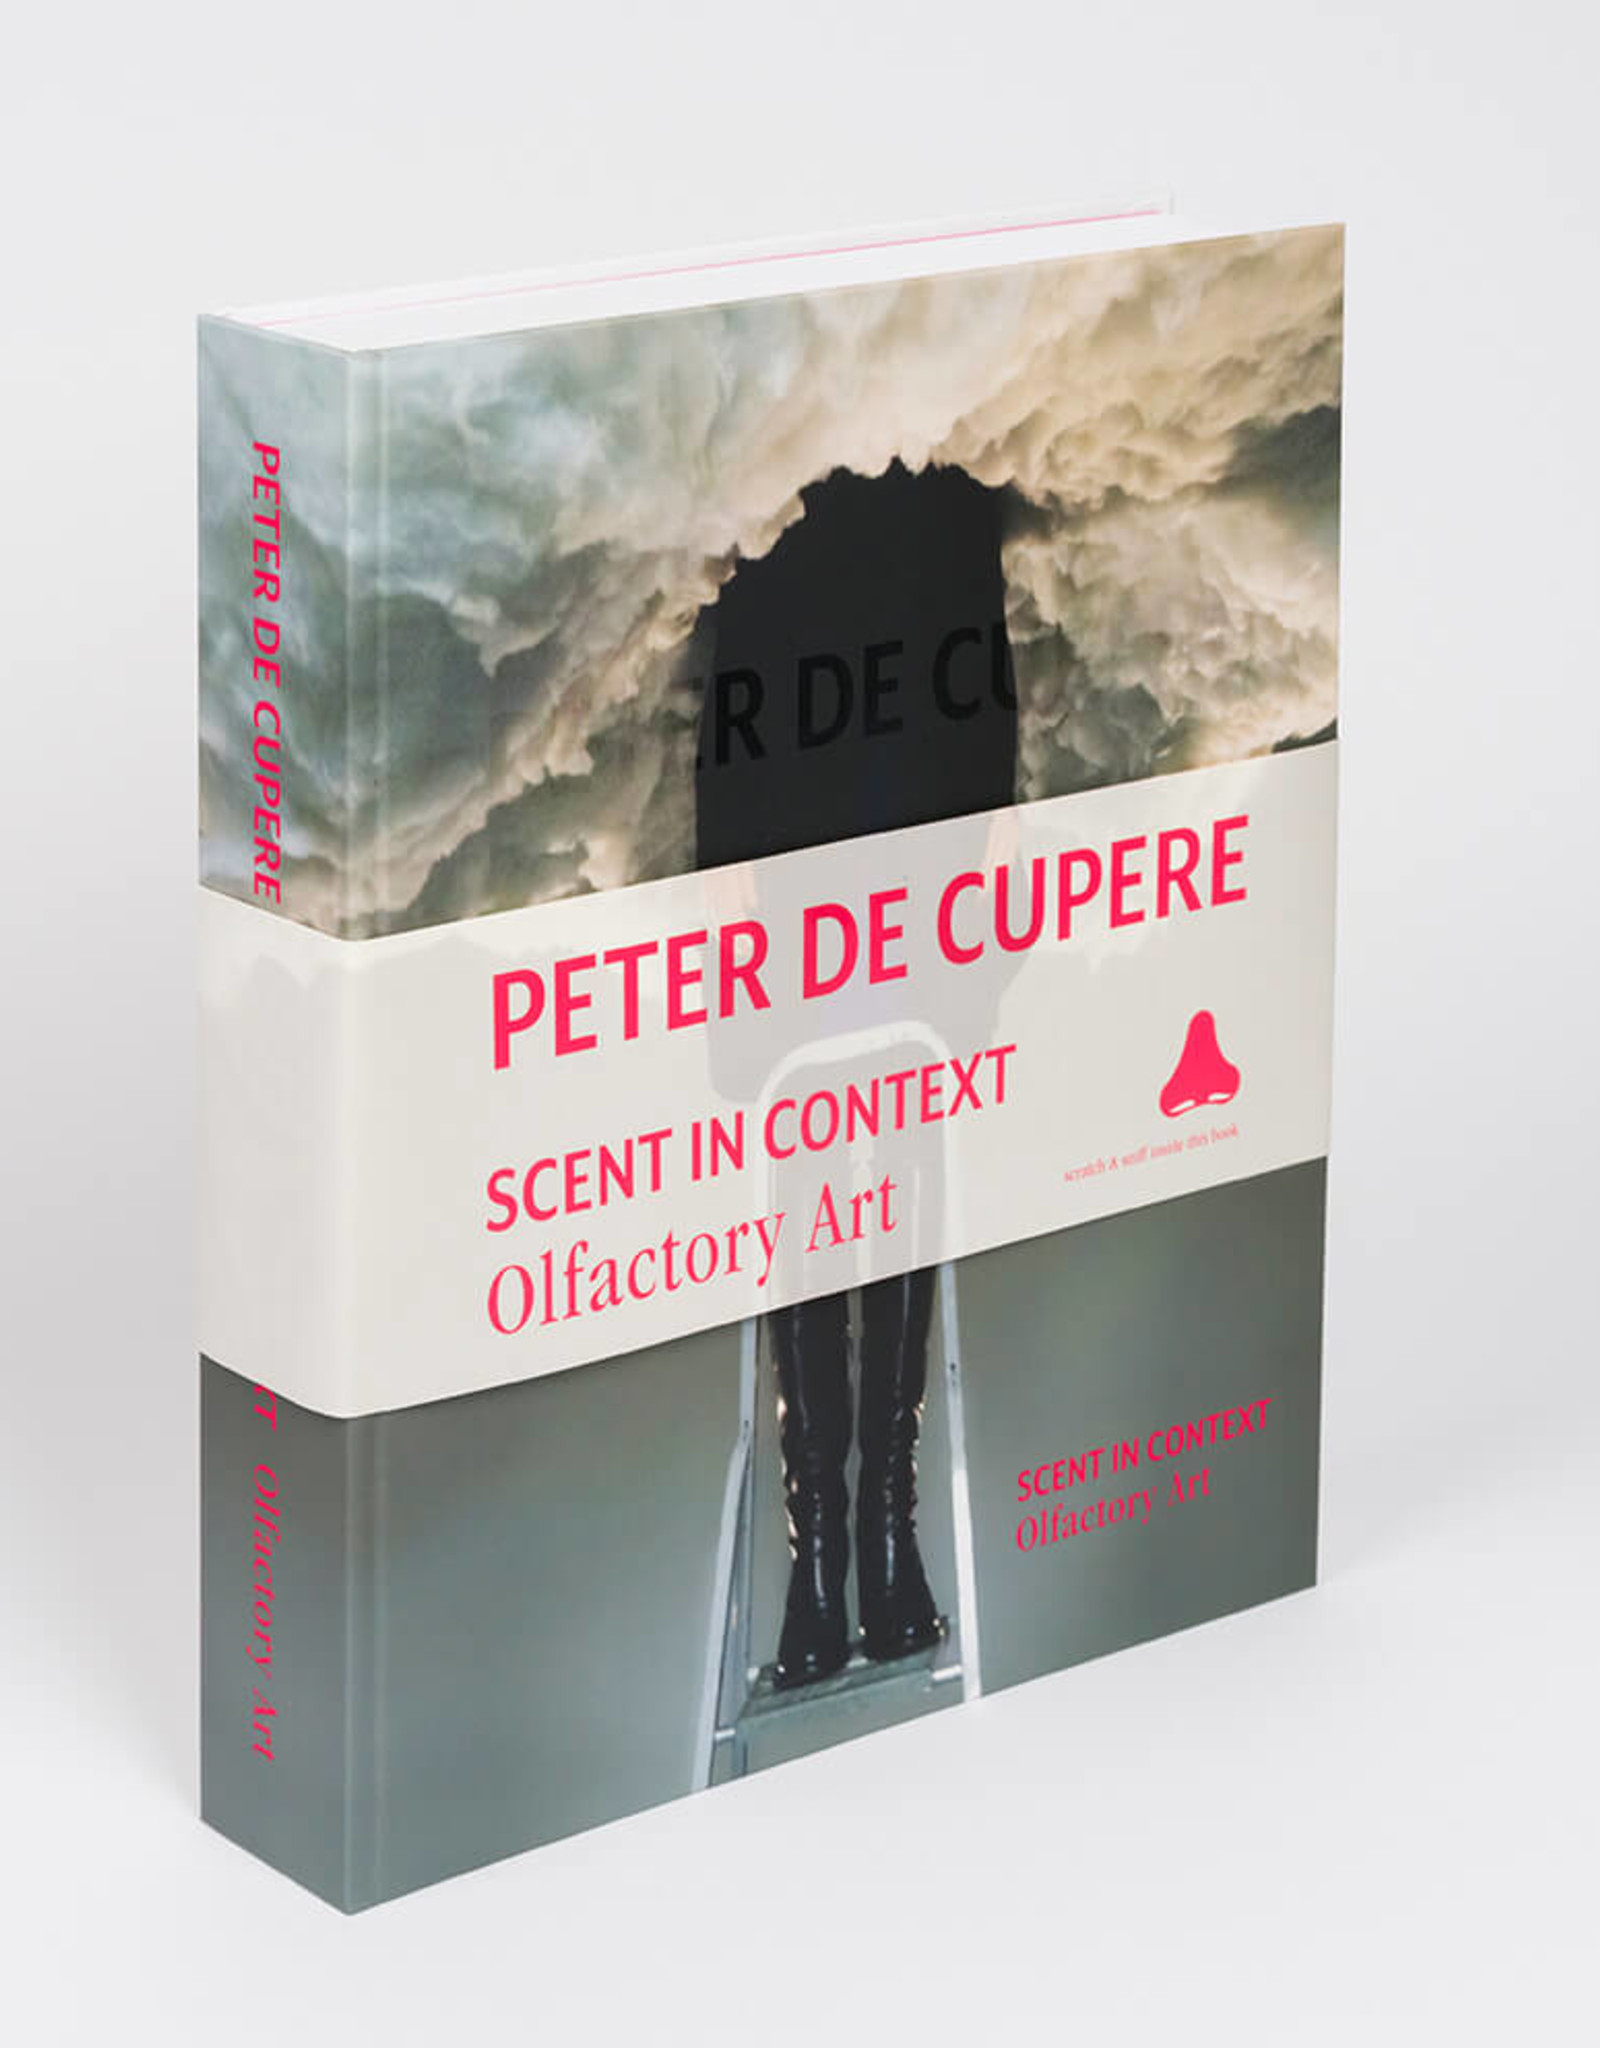 Peter de Cupere - Scent in context